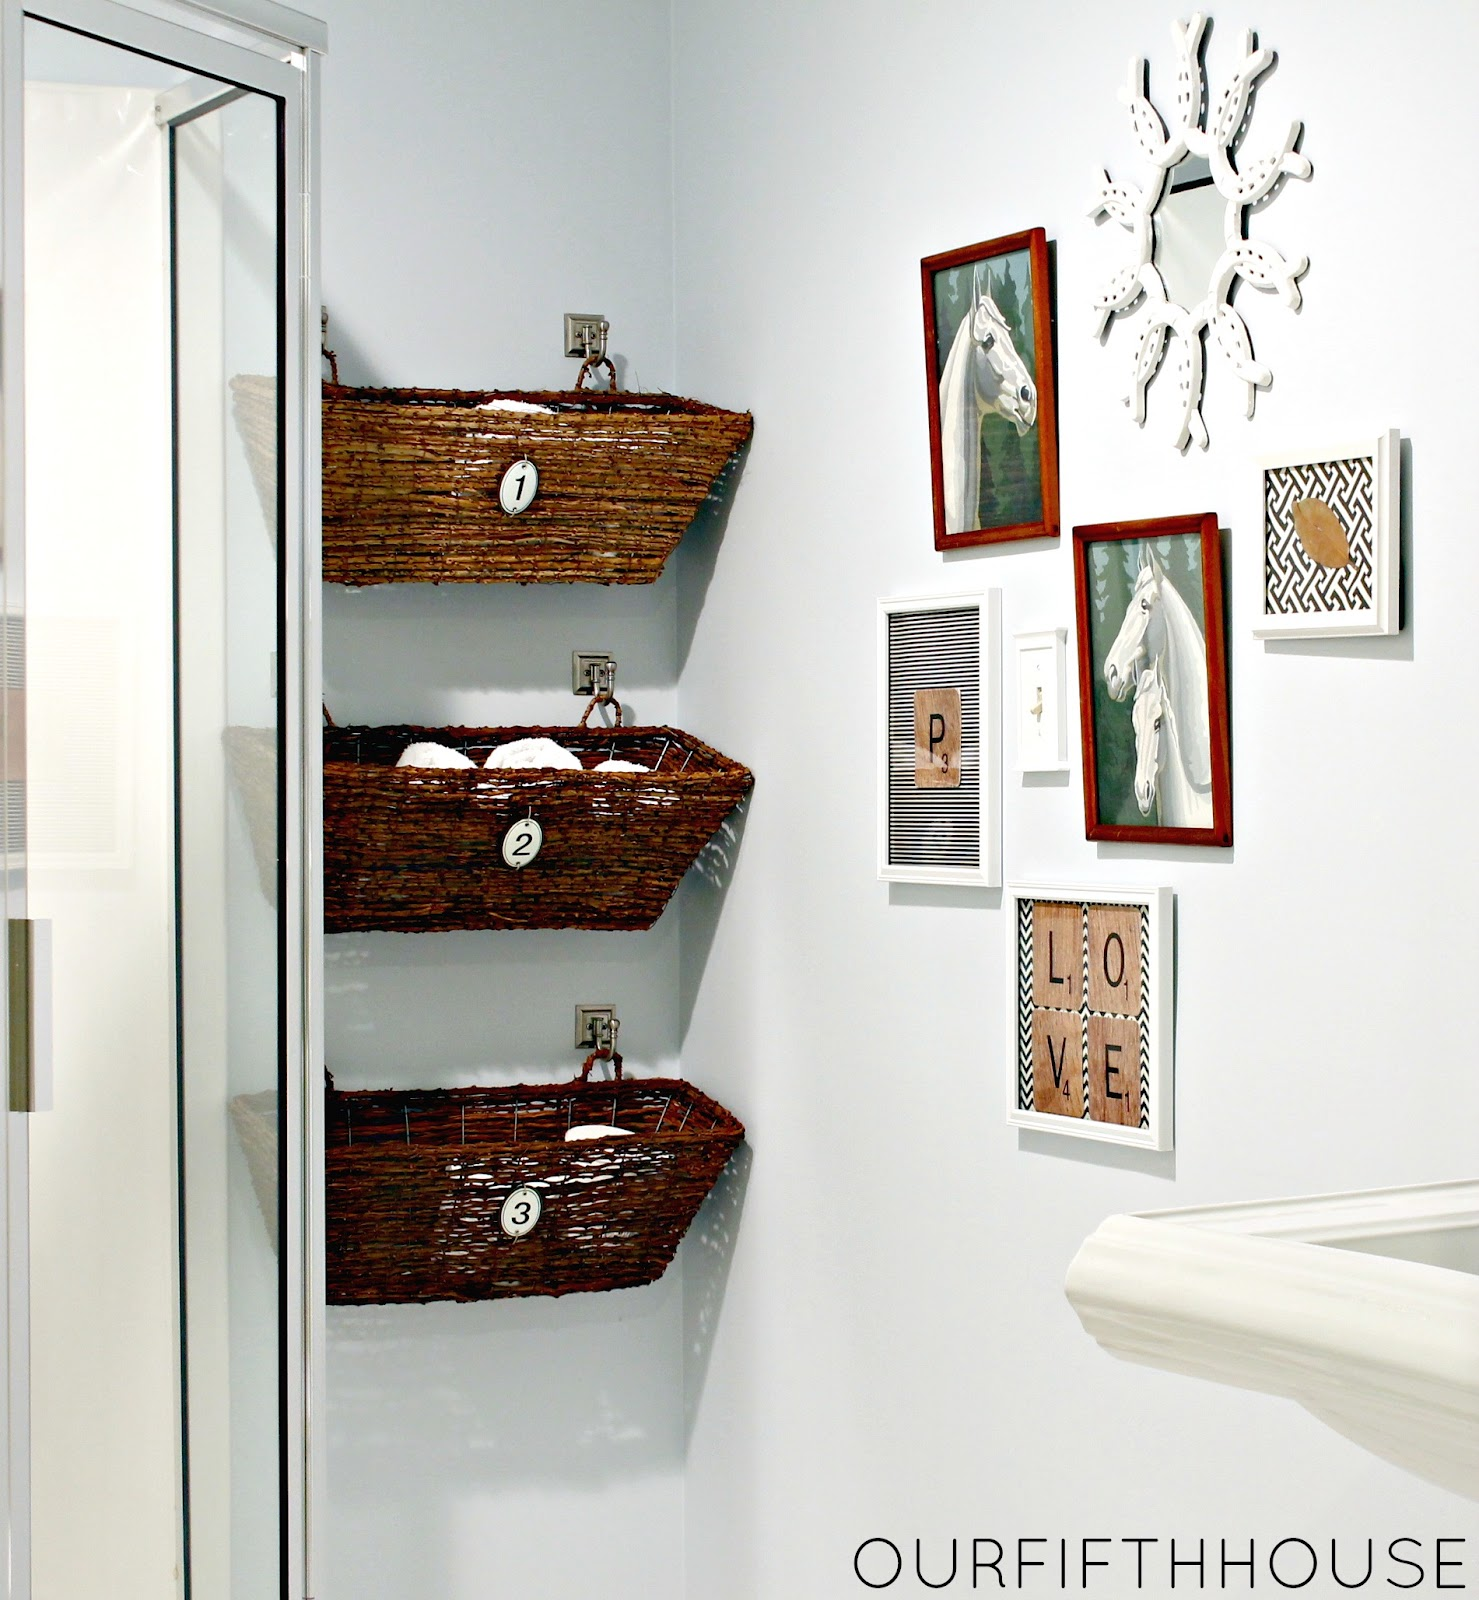 space saving ideas for small bathrooms. 15 Small Bathroom Storage Ideas  Wall Solutions and Shelves for Bathrooms